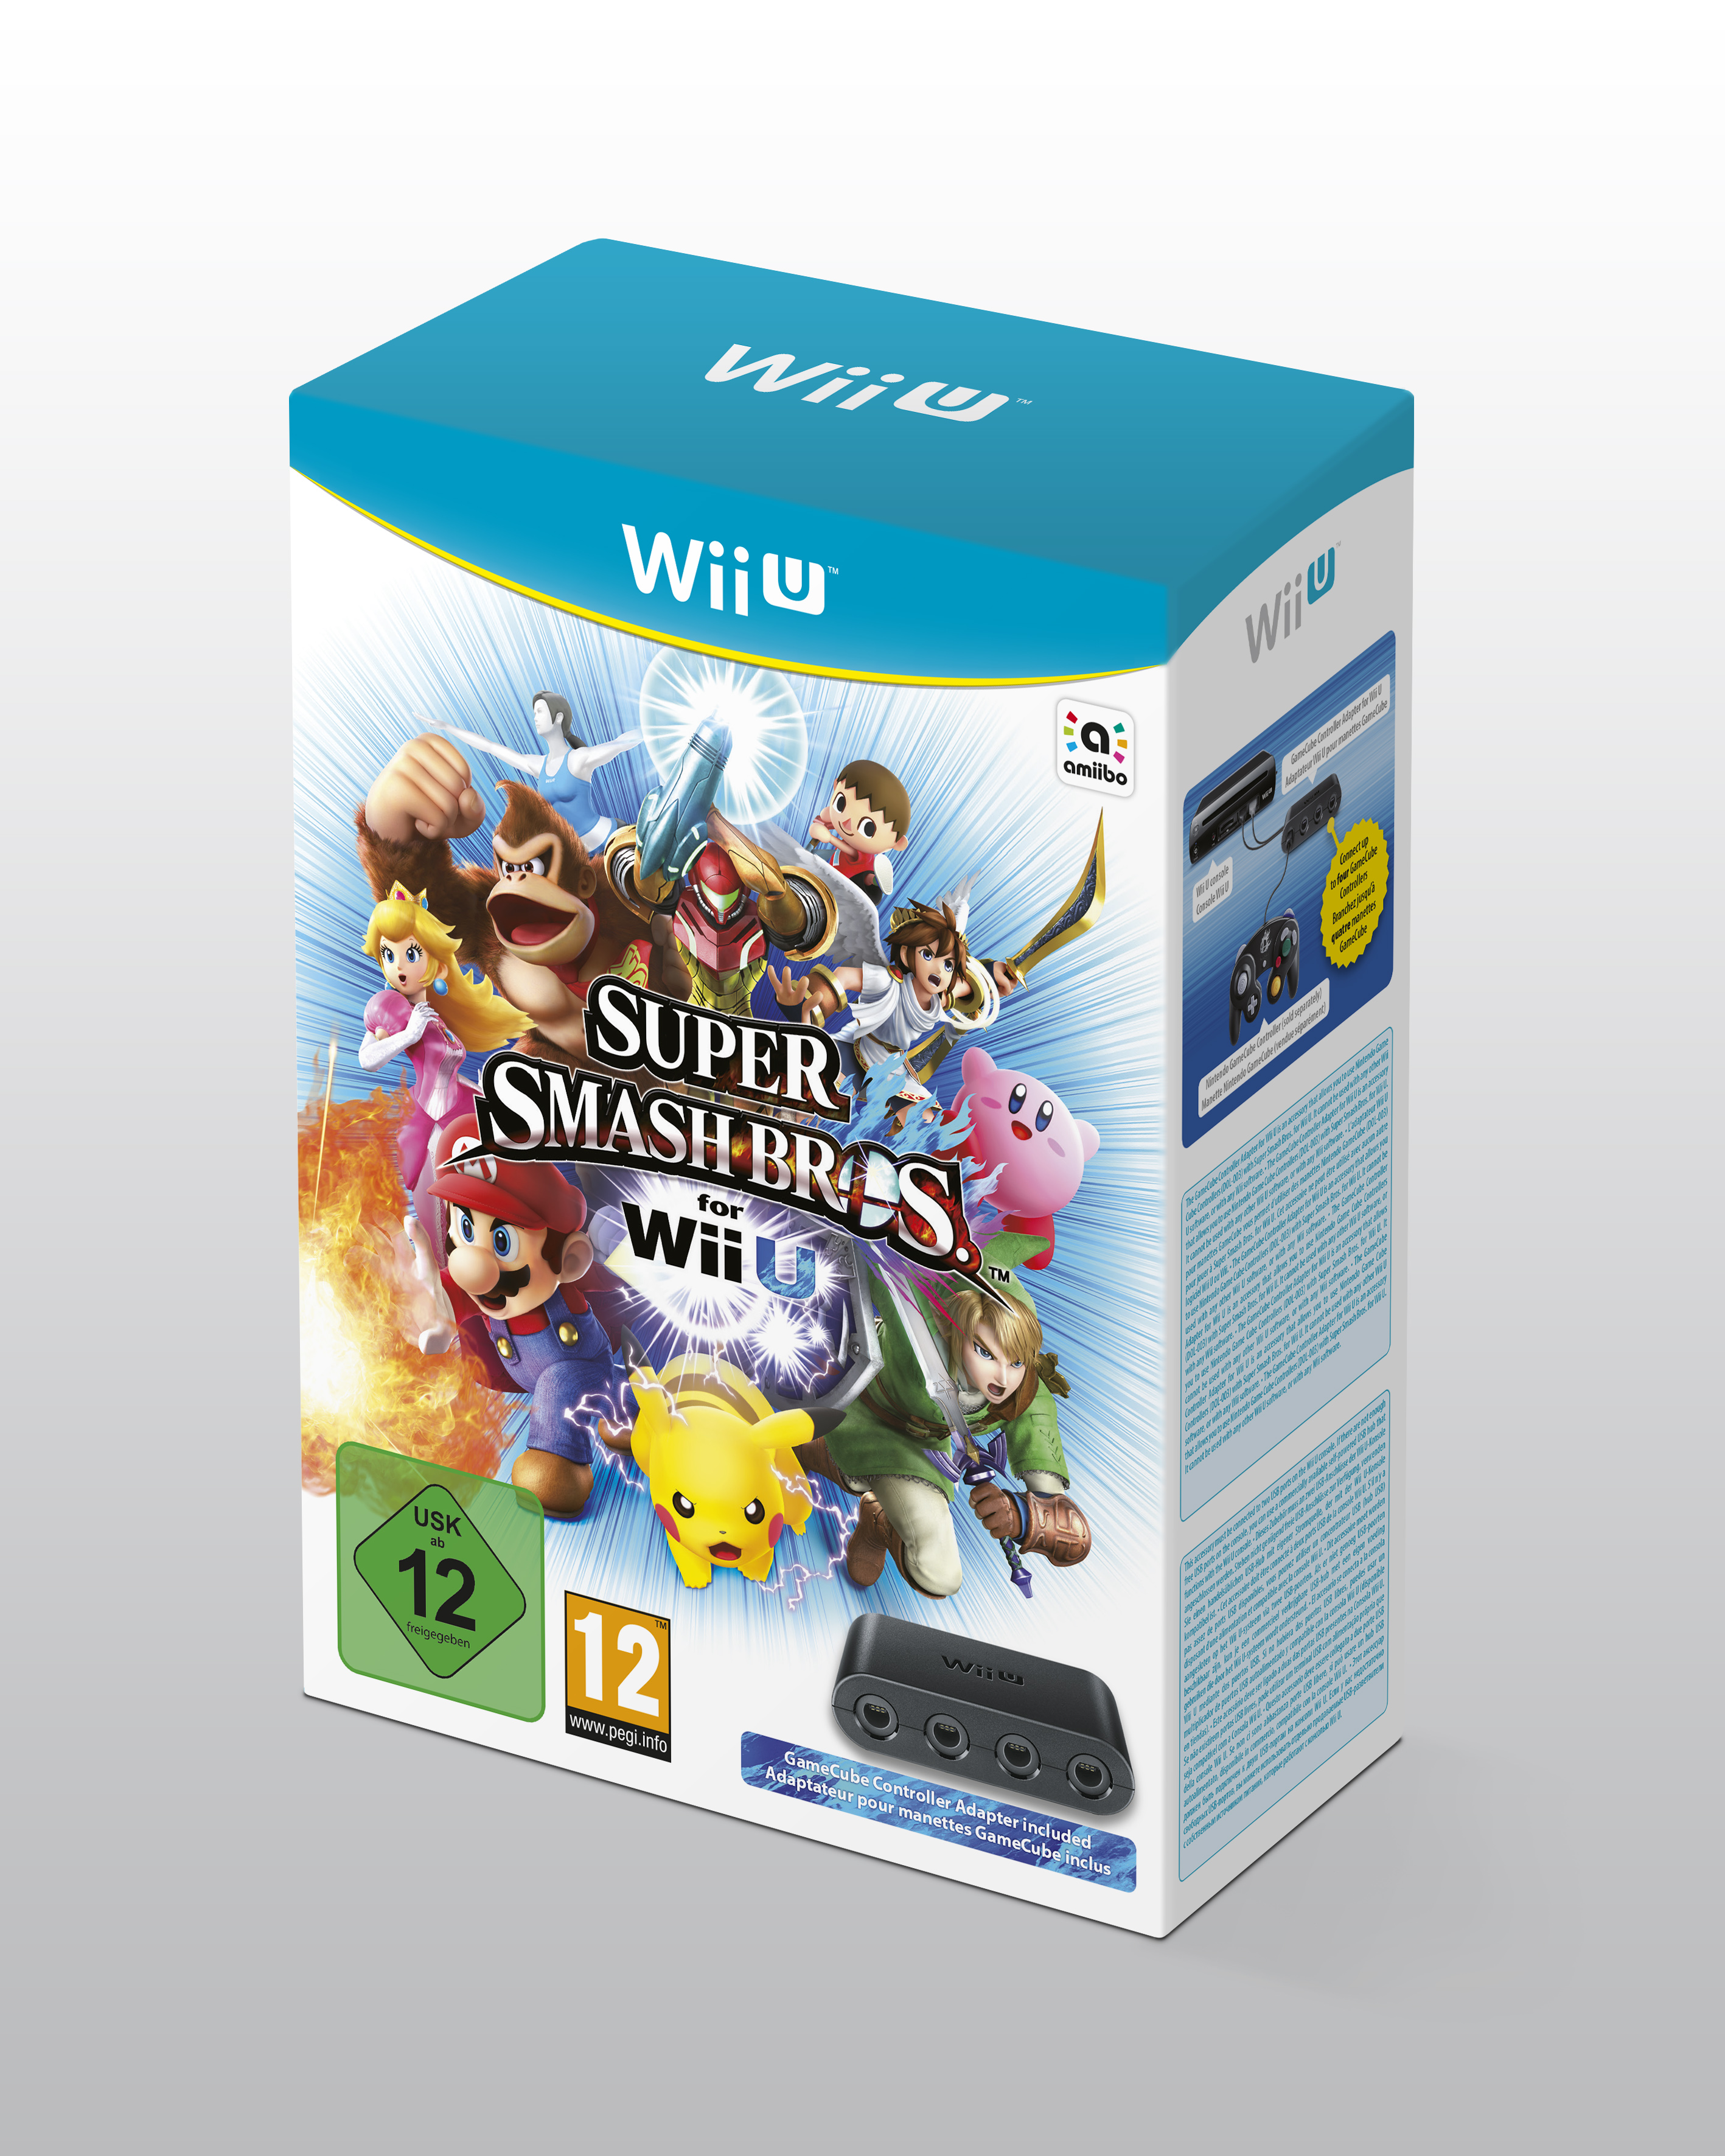 Des Packs Et Des Amiibo Pour Super Smash Bros For Wii U